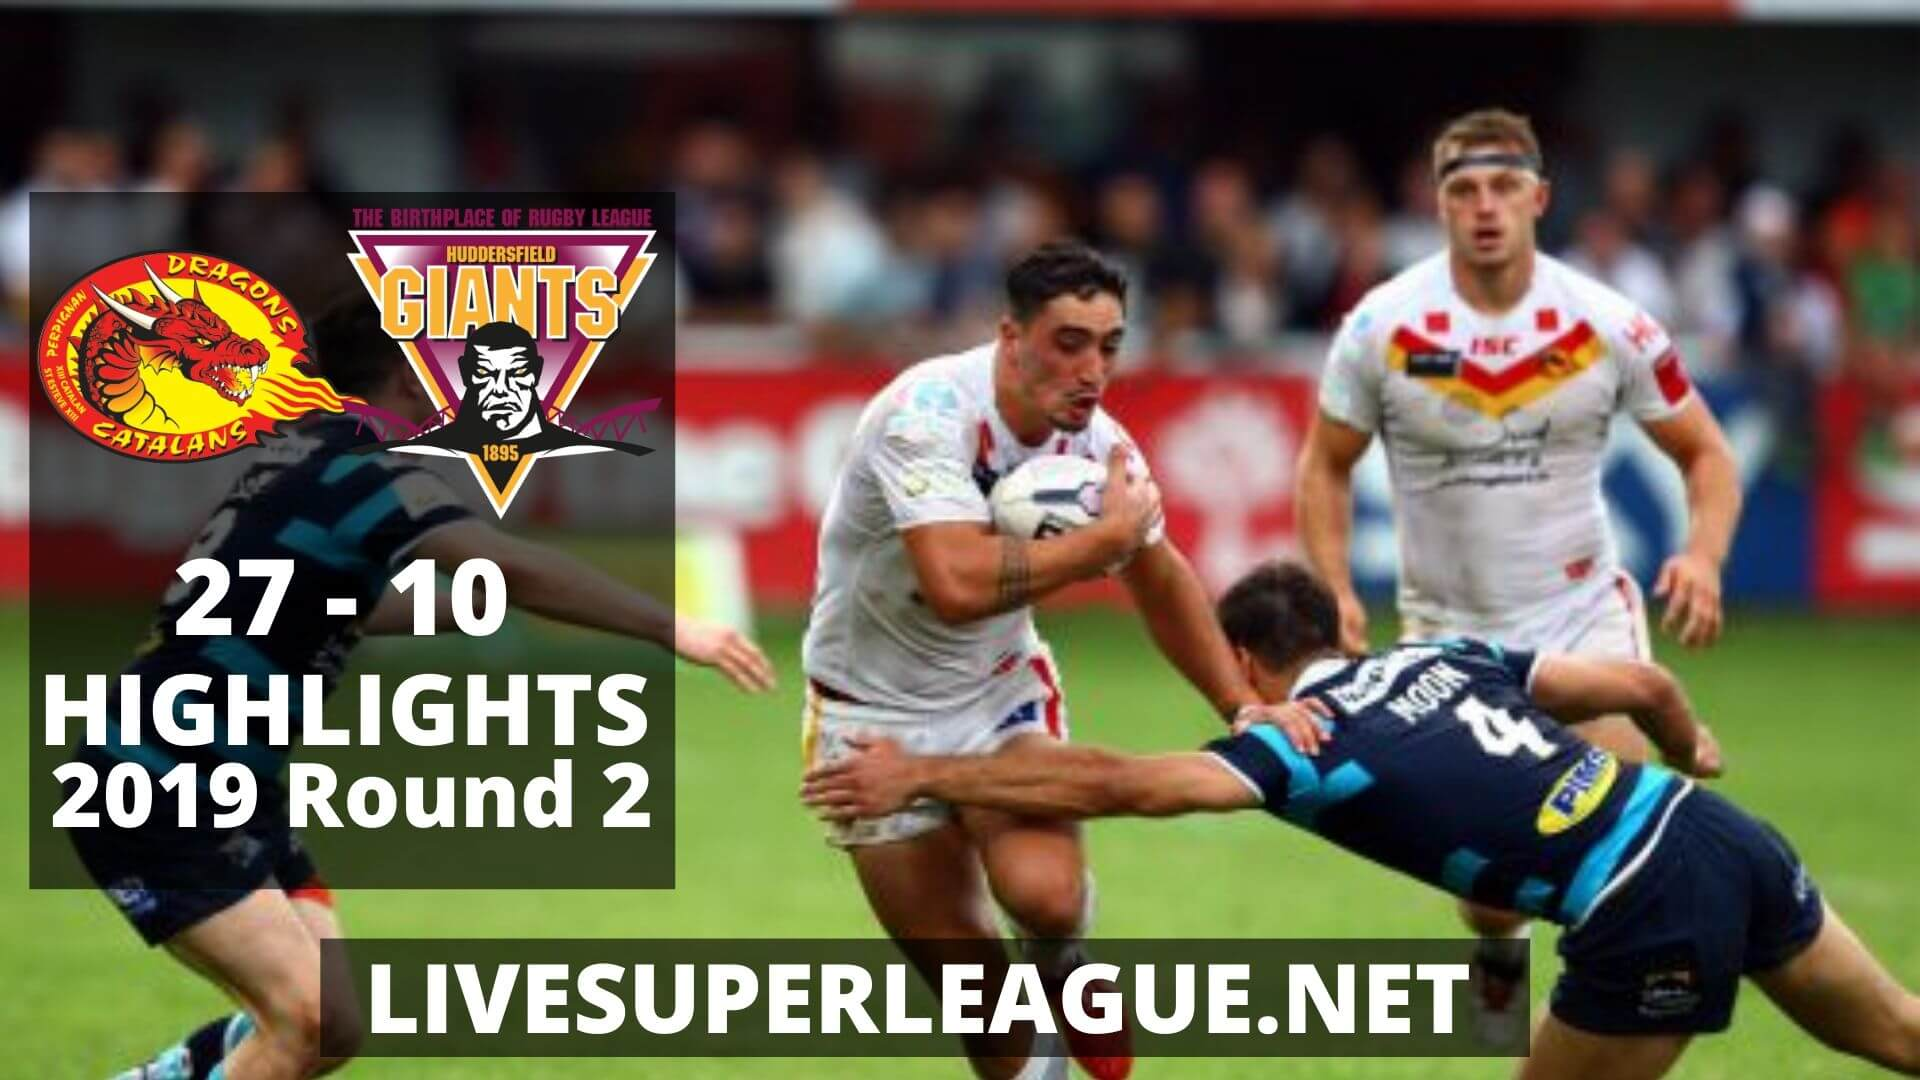 Catalans Dragons Vs Huddersfield Giants Highlights 2019 Round 2